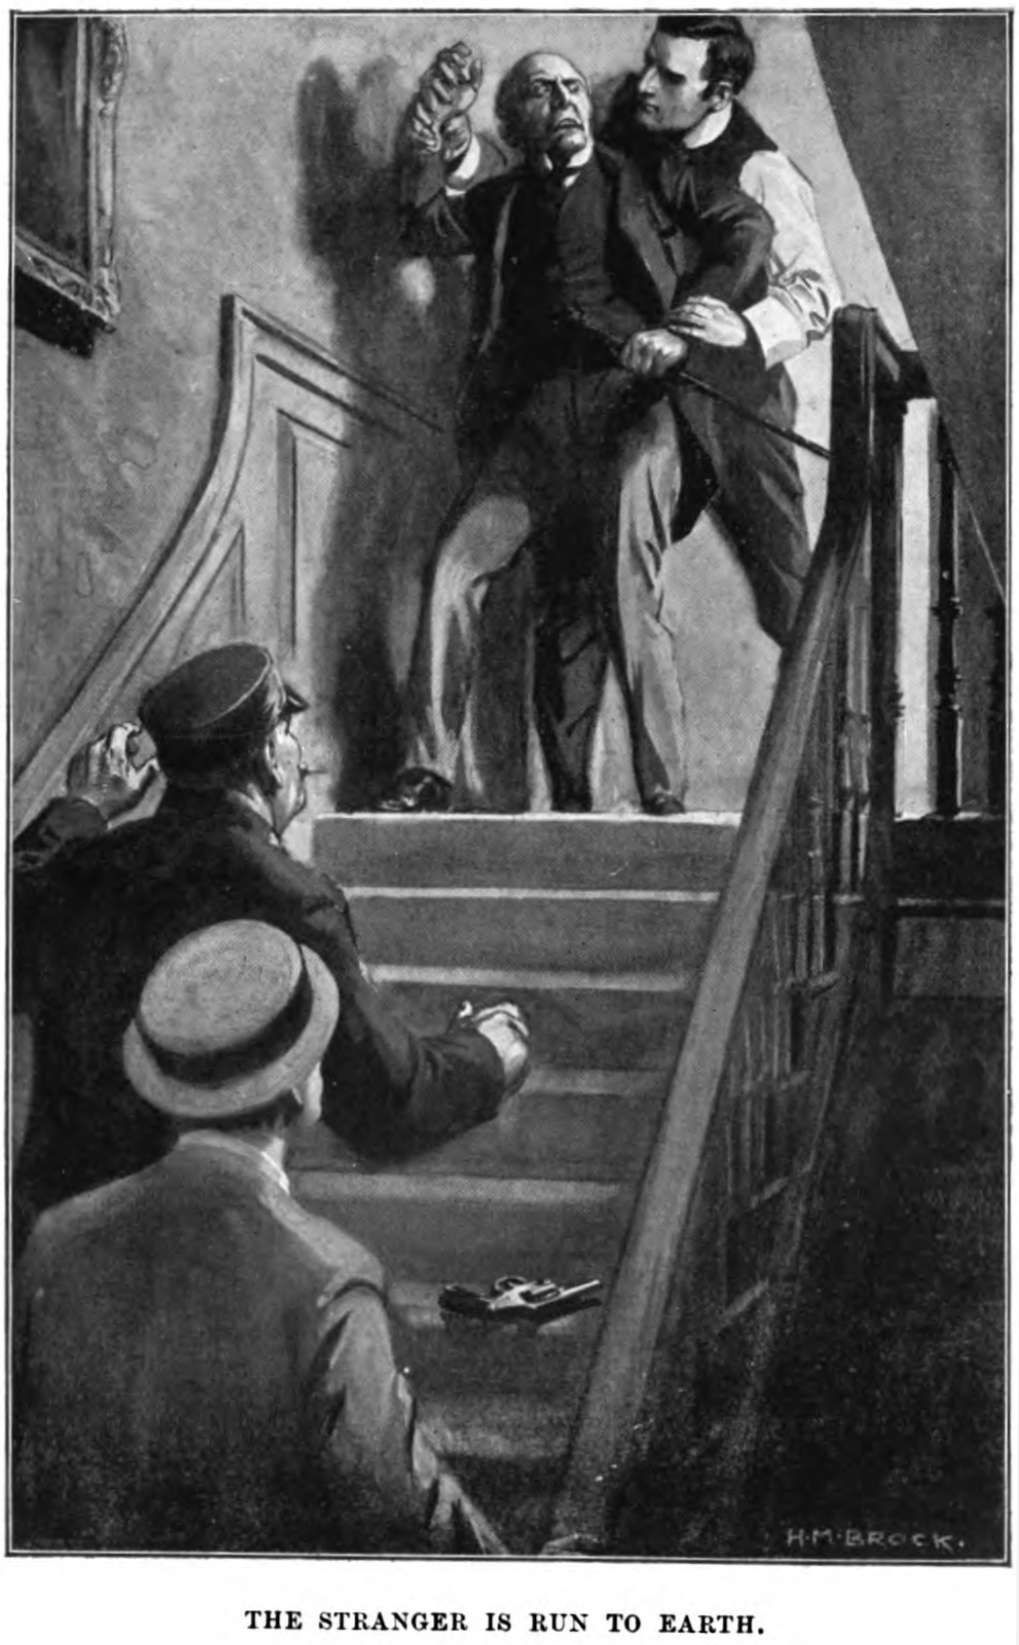 Illustration_by_H.M.Brock-1875-1960-for_John_Thorndyke-s_cases-1908-9-_by_R.Austin_Freeman-1862-1943--p286_Superintendant_Miller_Rises_to_the_Occasion_05